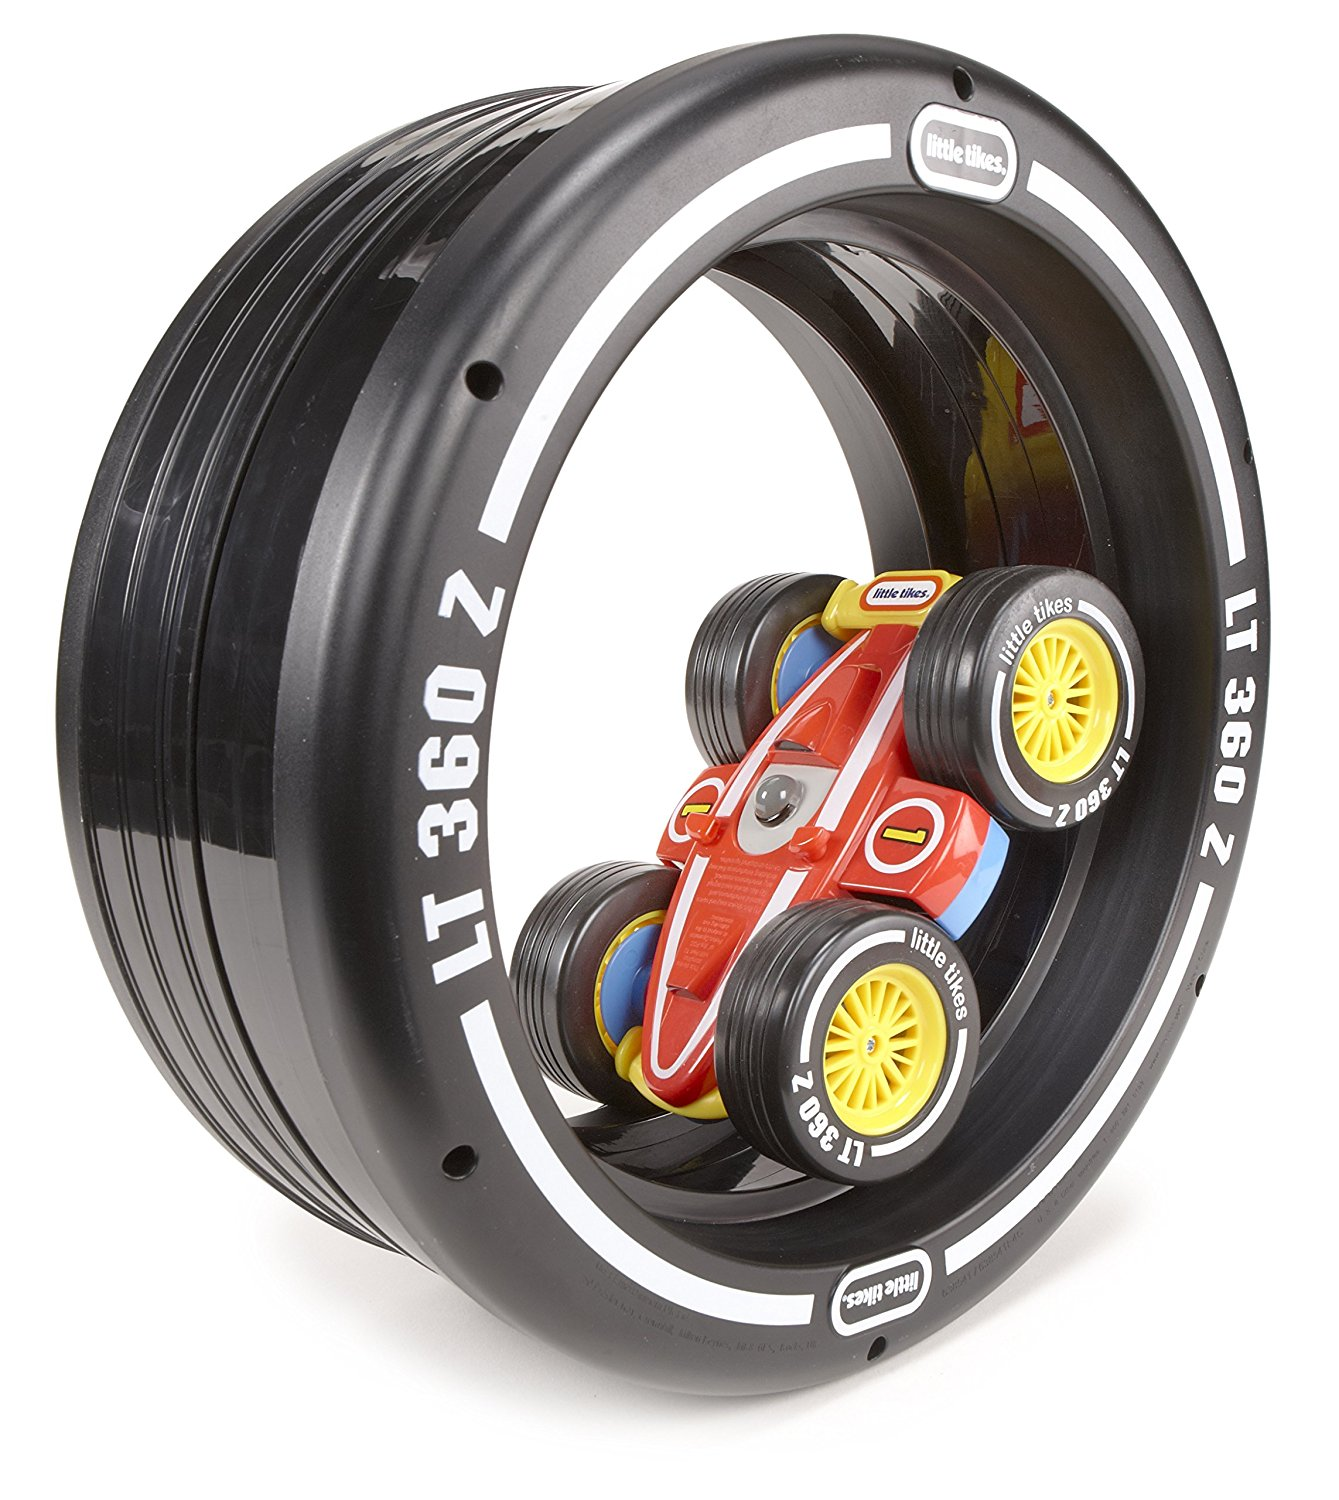 Amazon.com: Little Tikes RC Tire Twister Toy: Toys & Games.